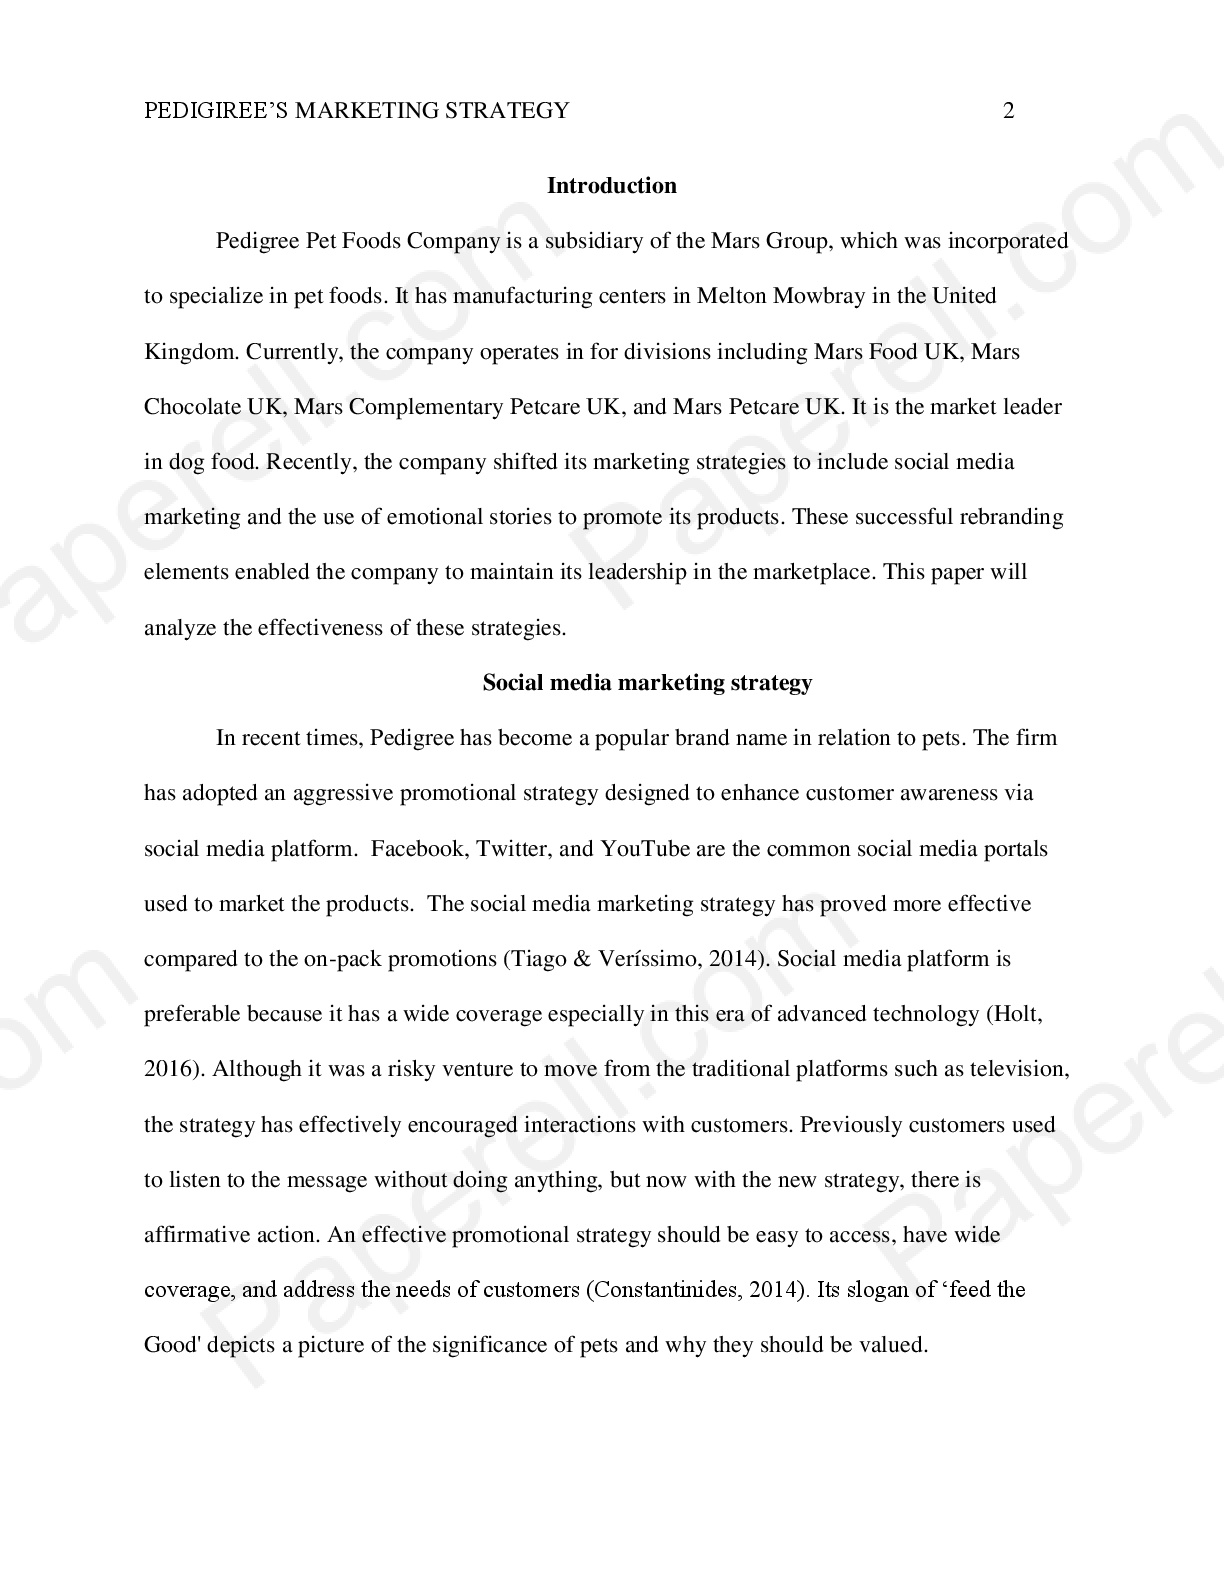 Interesting Essay Topics For High School Students  How To Write A Essay Proposal also Research Essay Topics For High School Students Buying Papers Online Plagiarism Help On Homework Business Law Essays